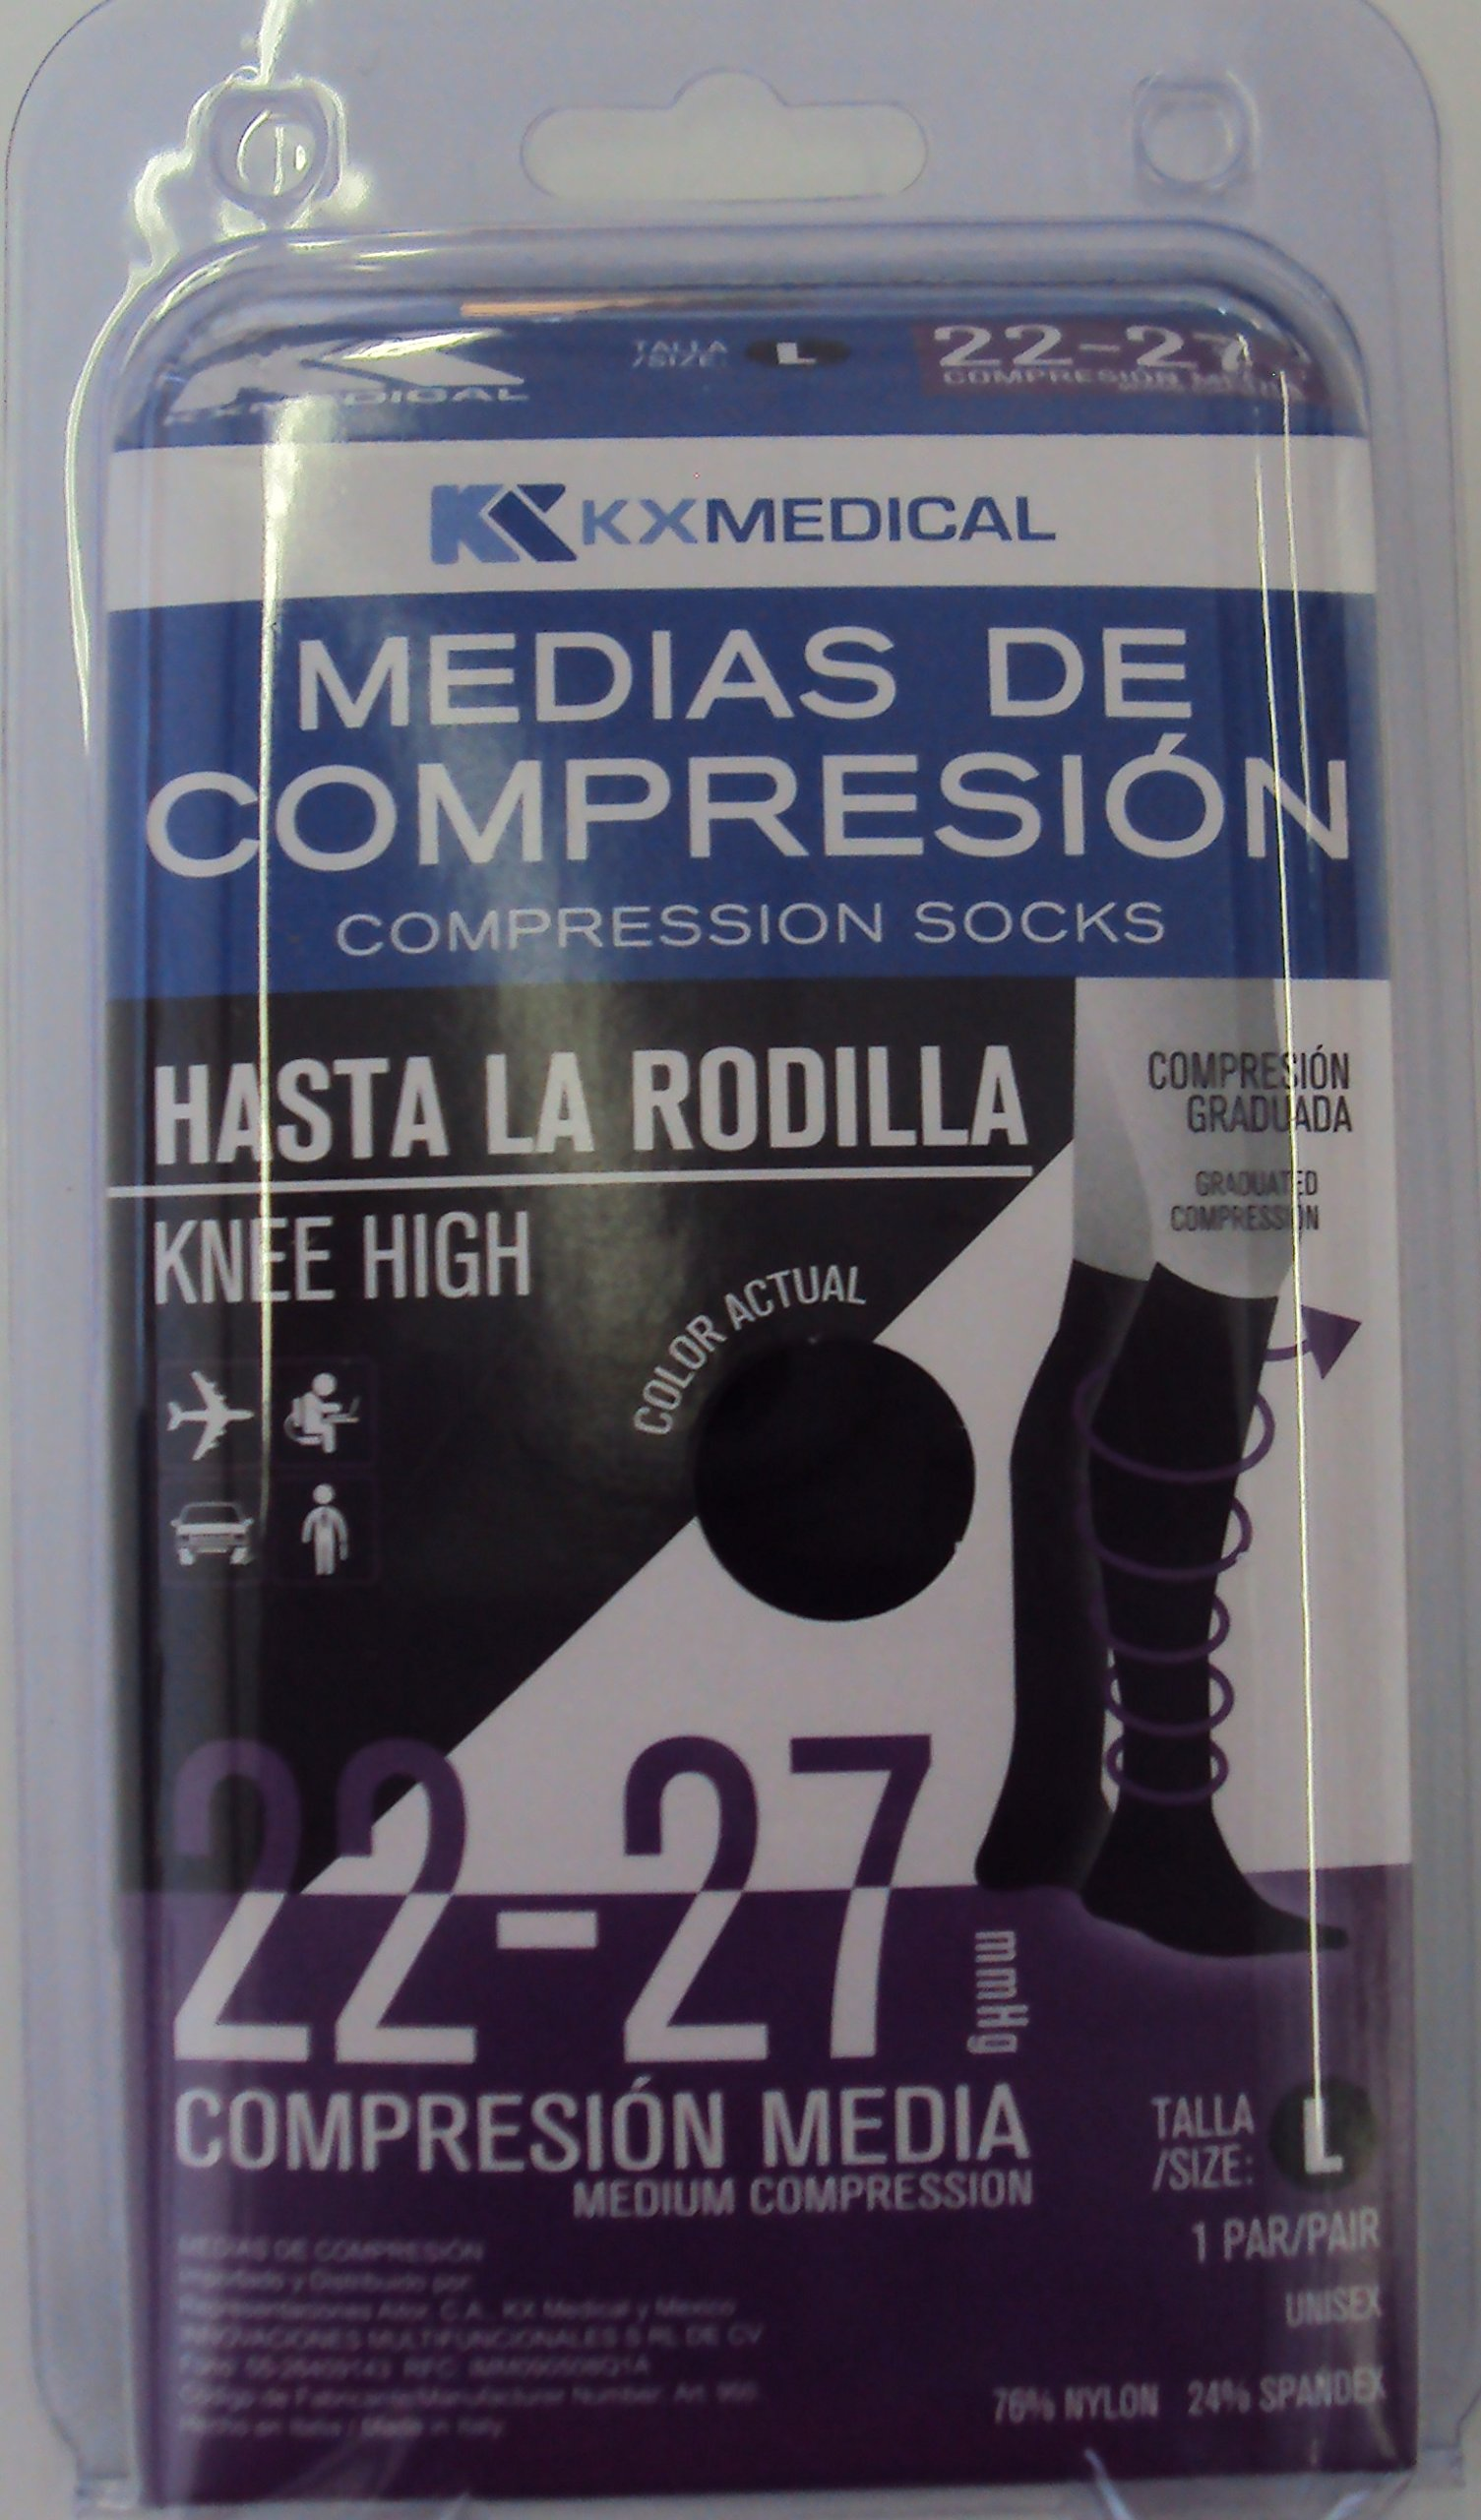 Knee High Compression Socks 20-30 mmHg (CE 22-27 mmHg) Size L, Color Black. For Women&Men. Made in Italy. Recommended For Athletic Sports, Running, Flight Travel (MC118US)